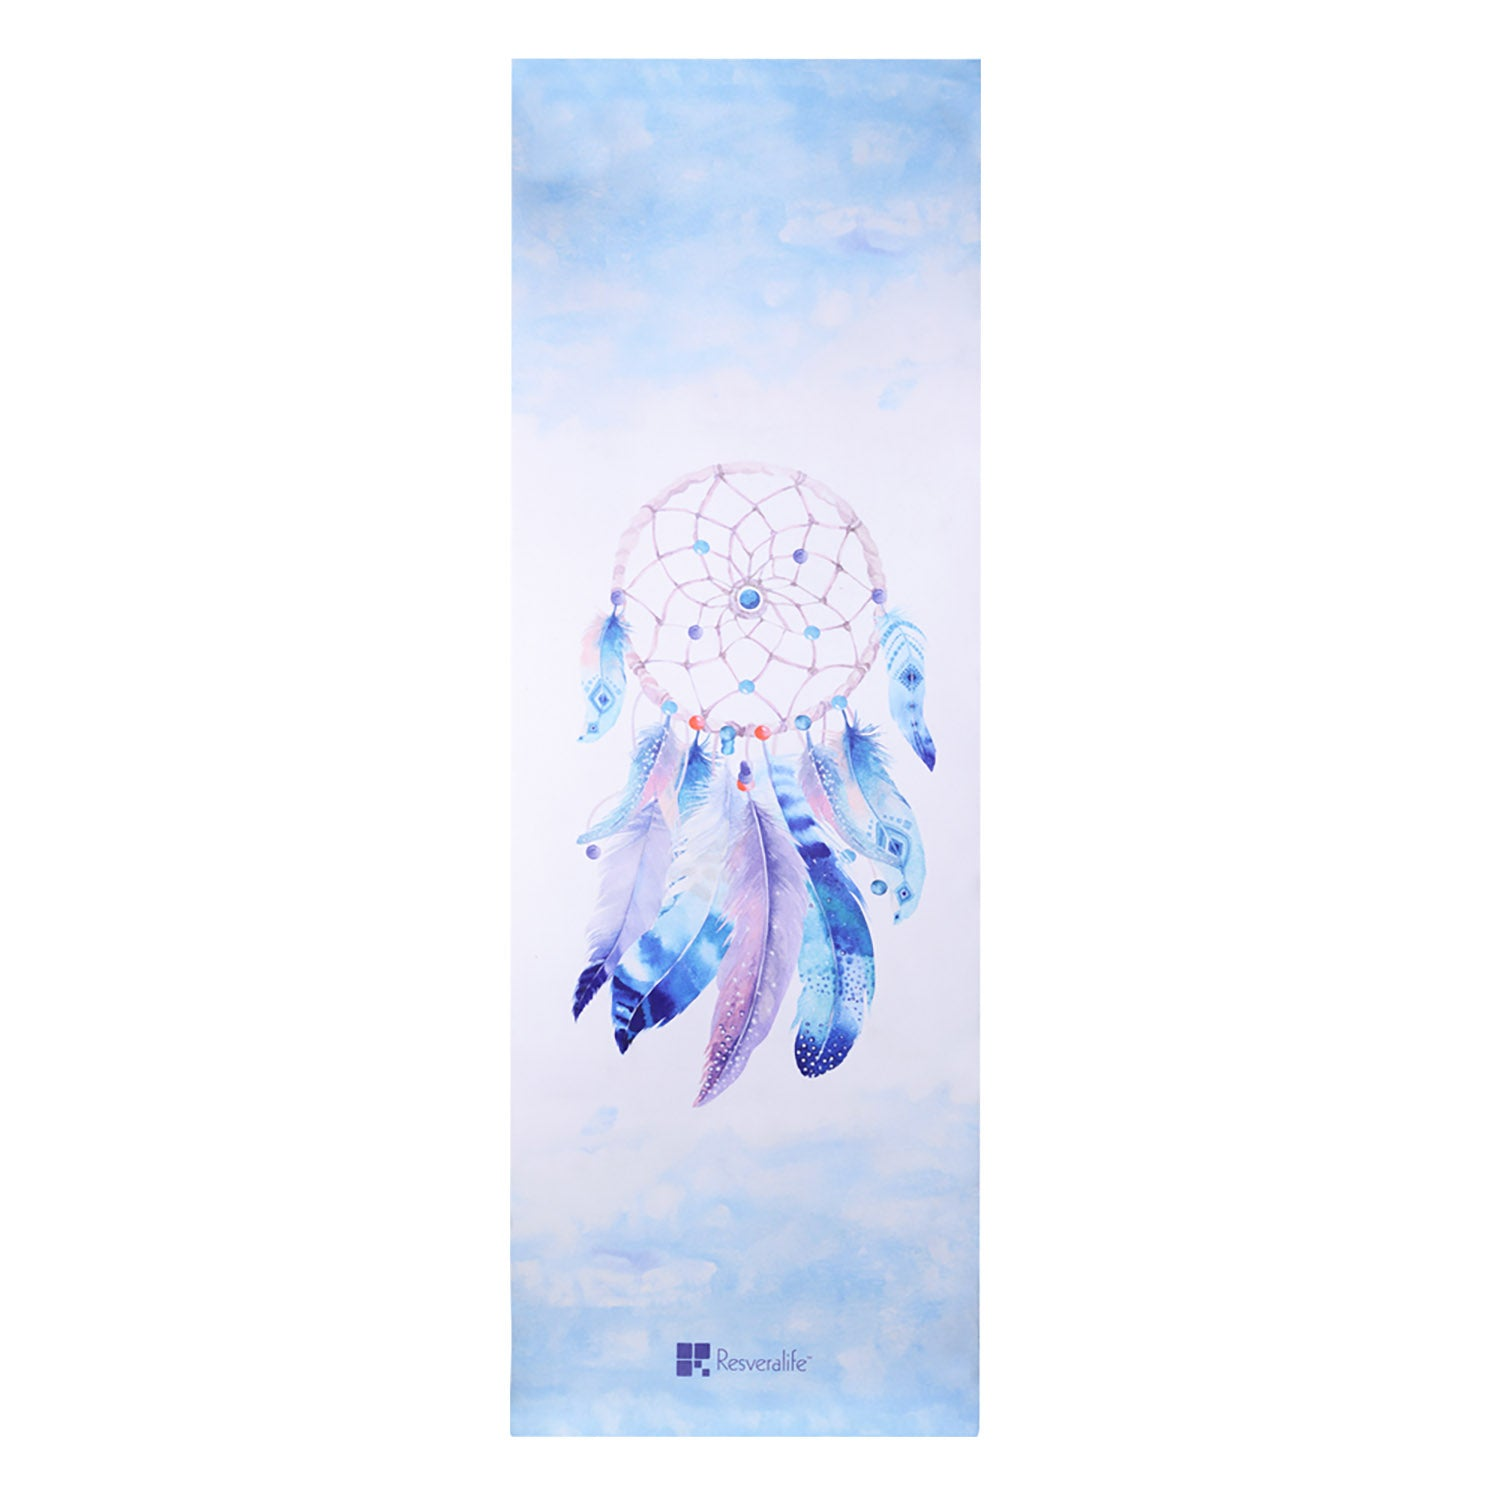 Resveralife Dreamcatcher Yoga Mat